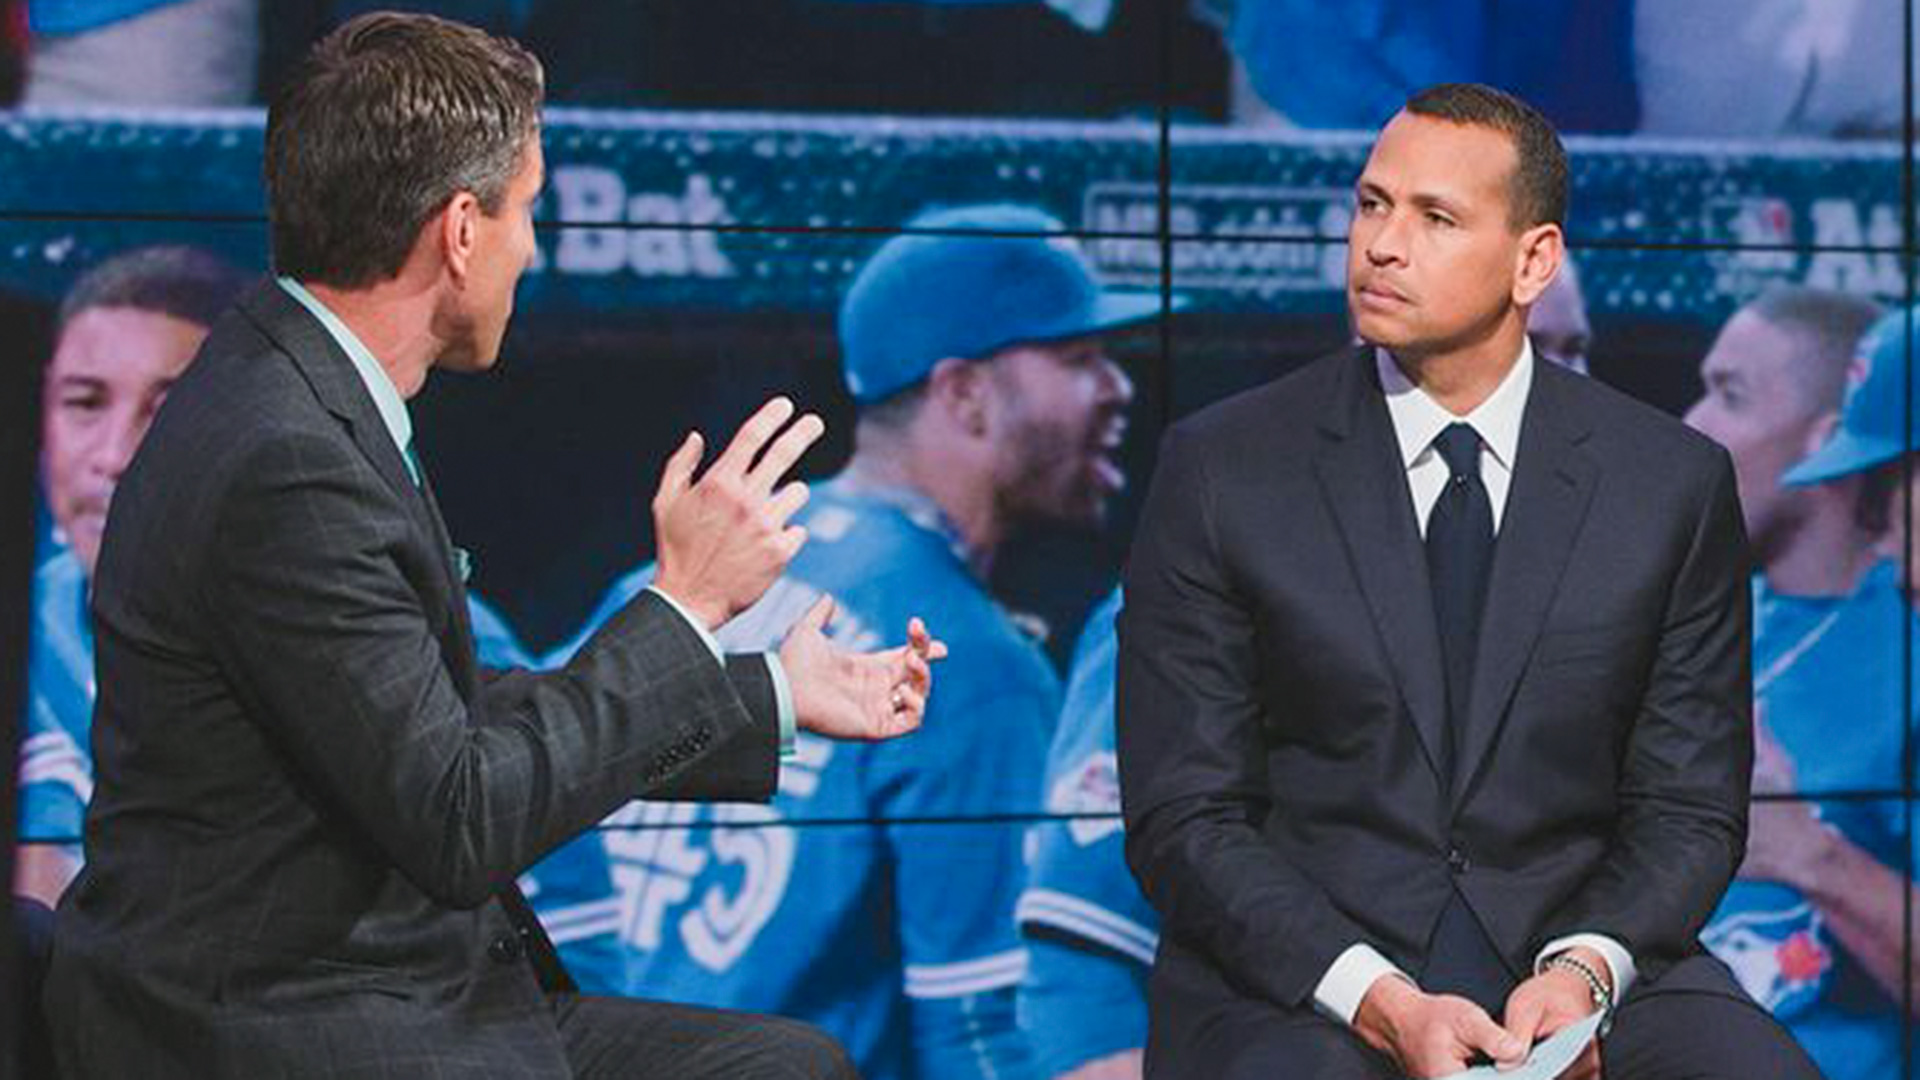 Controversial Ballplayer Joins ESPN's 'Sunday Night Baseball' Broadcast Team